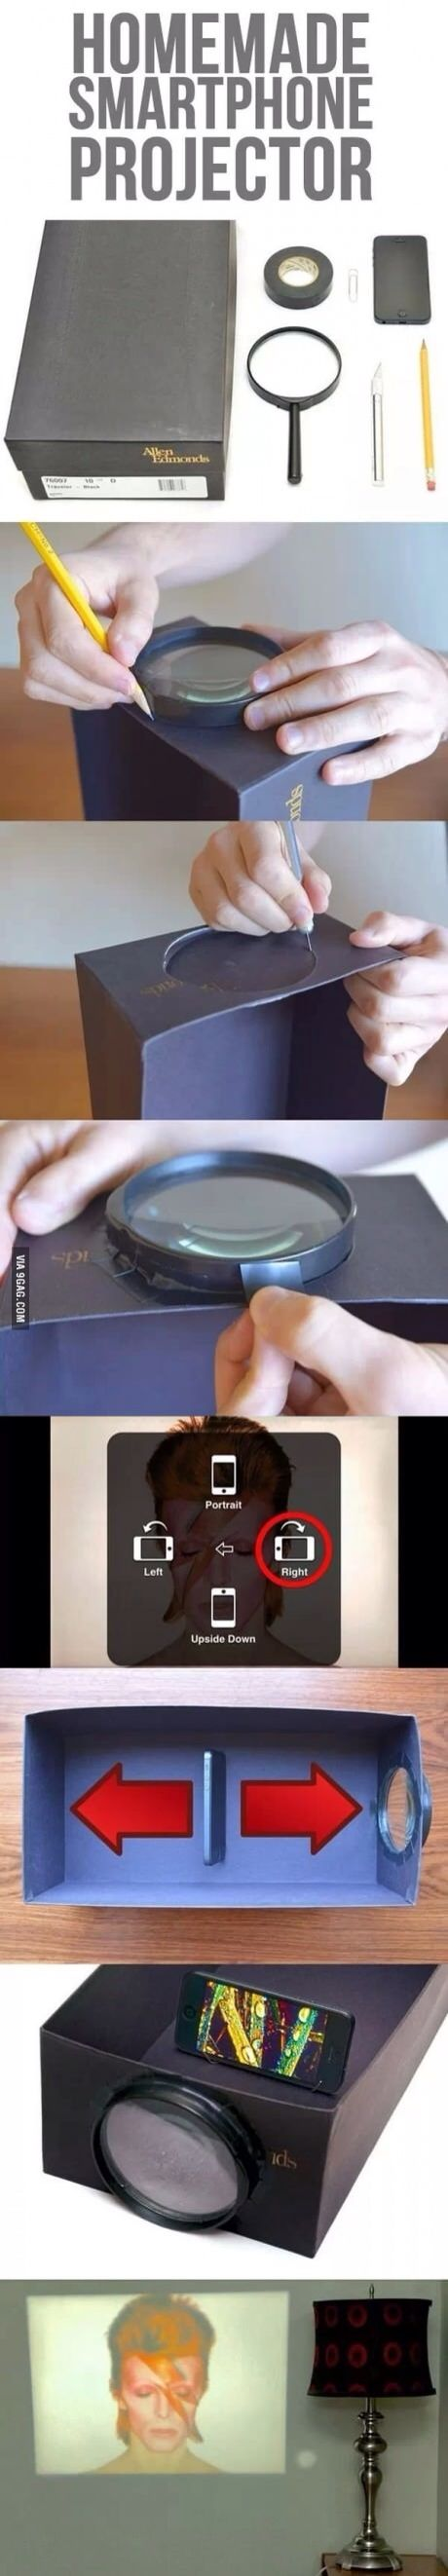 Homemade phone projector.